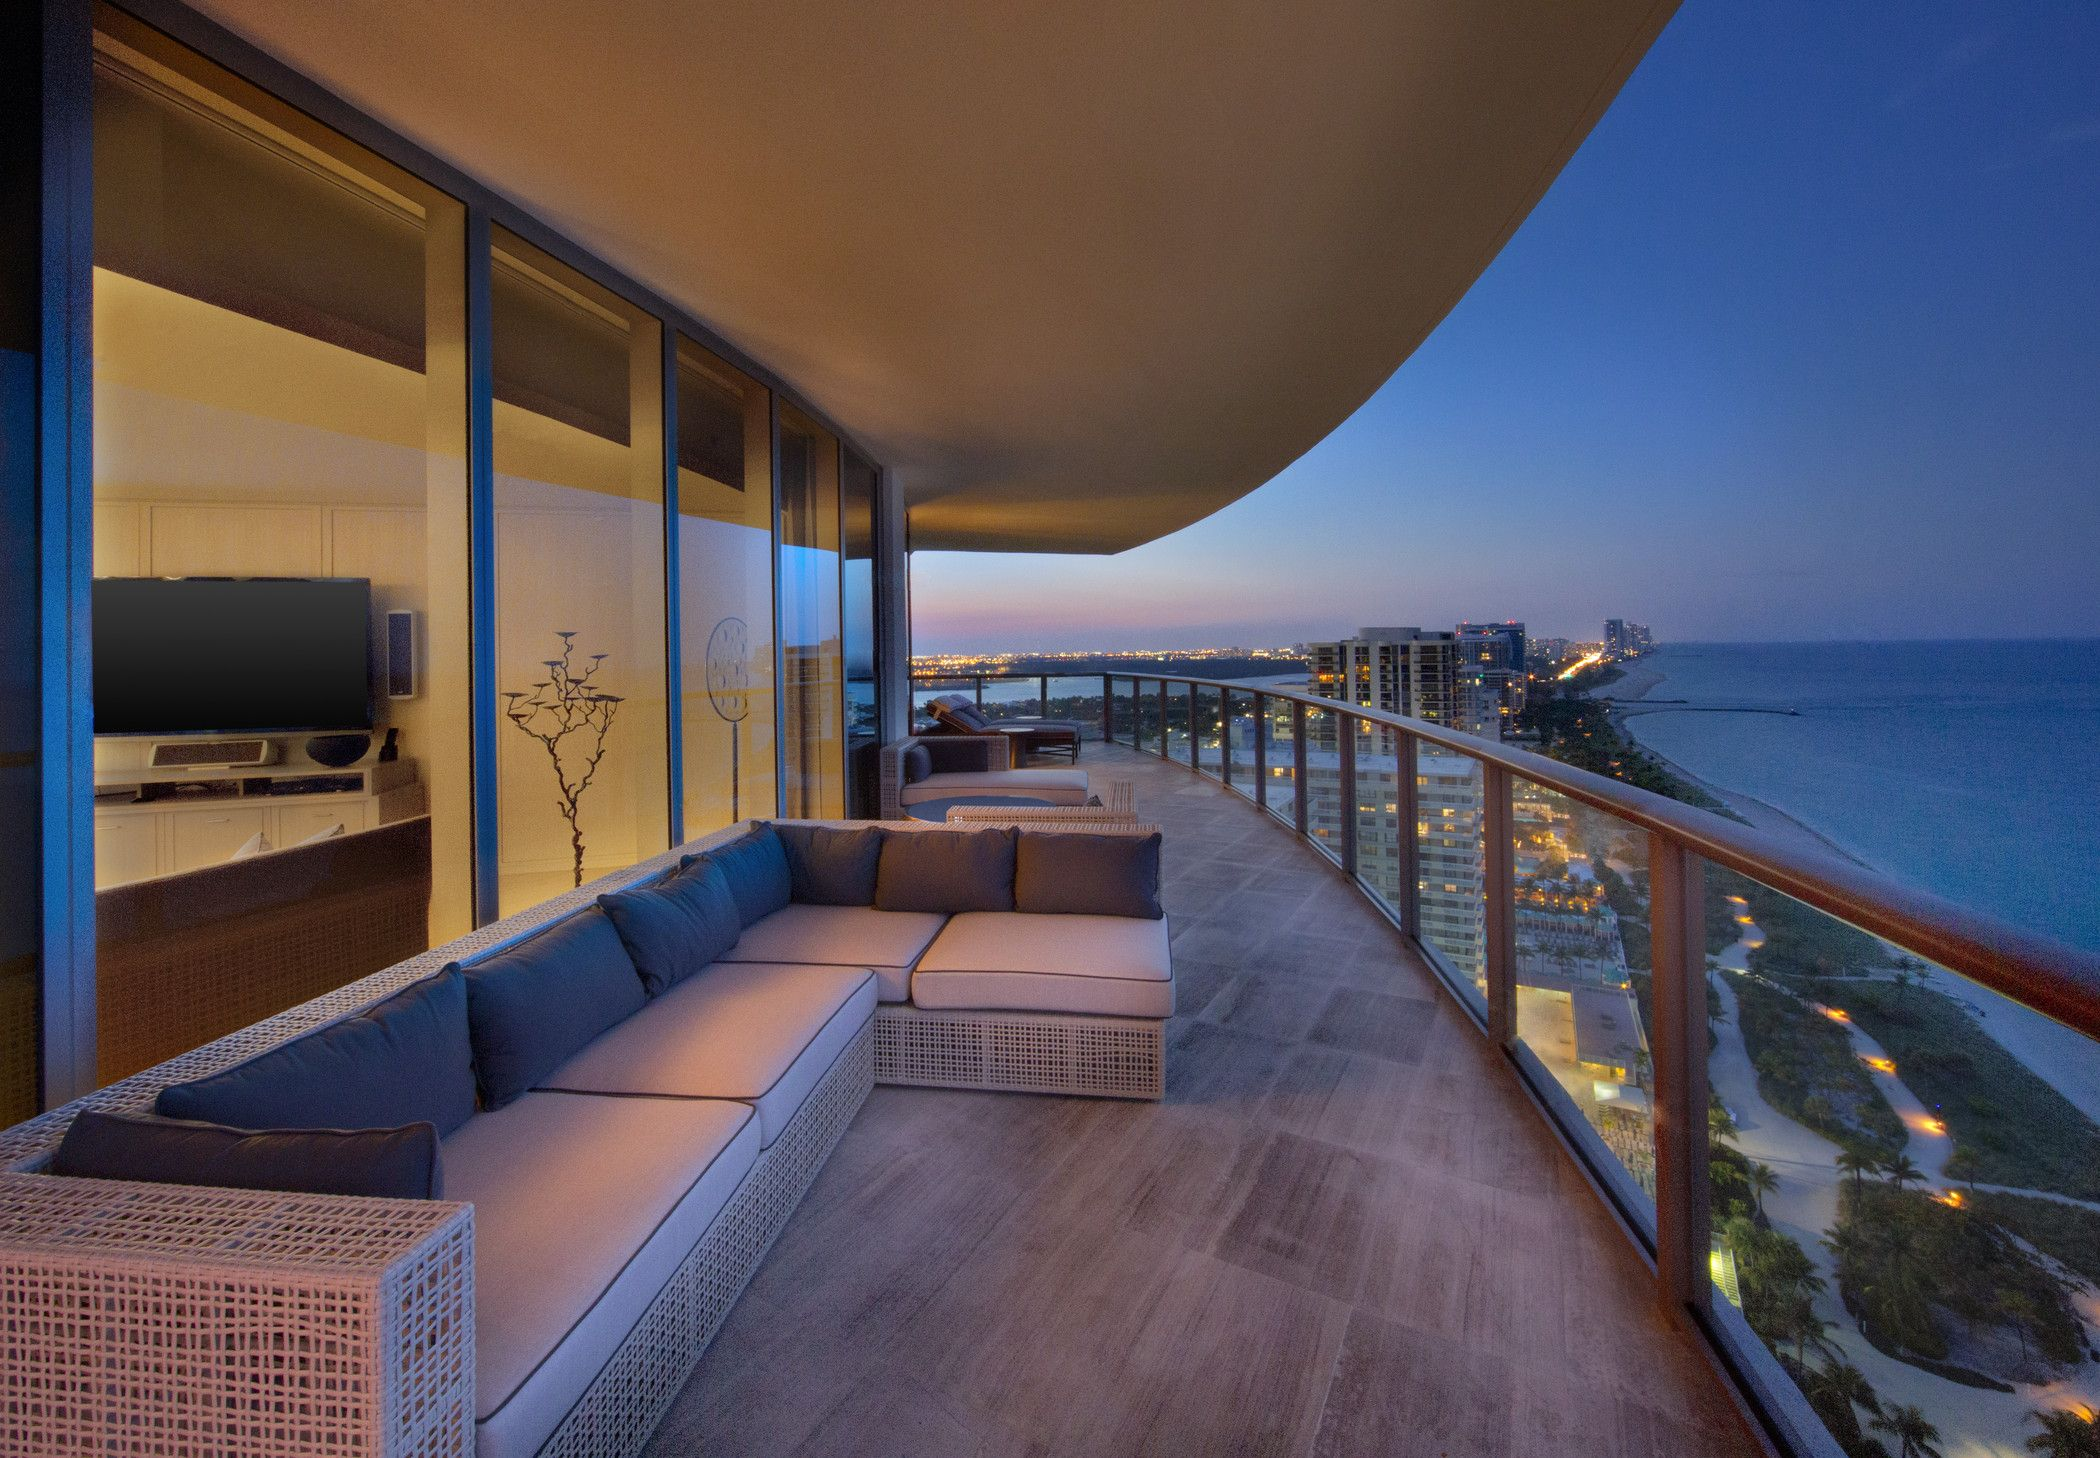 Where to Stay: The St. Regis Bal Harbour Resort, courtesy of @Travel + Leisure. #travel #Miami #DestinationFabulous